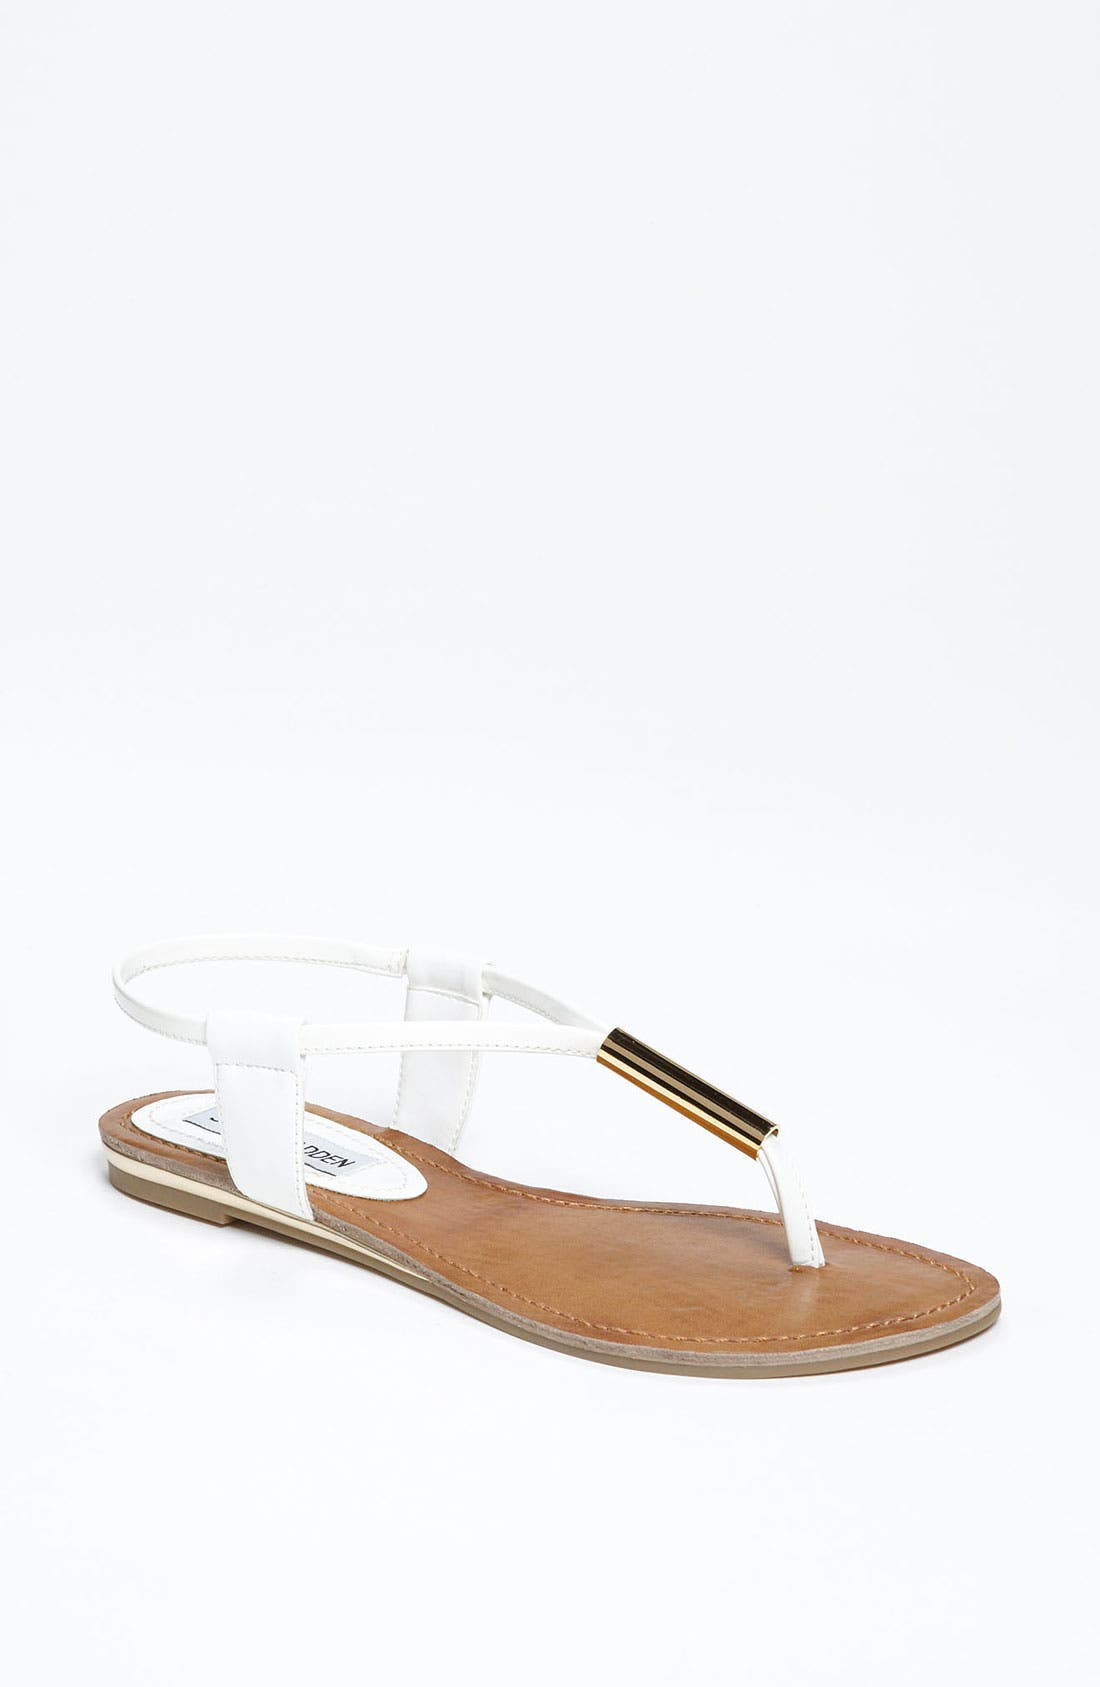 Alternate Image 1 Selected - Steve Madden 'Hamil' Sandal